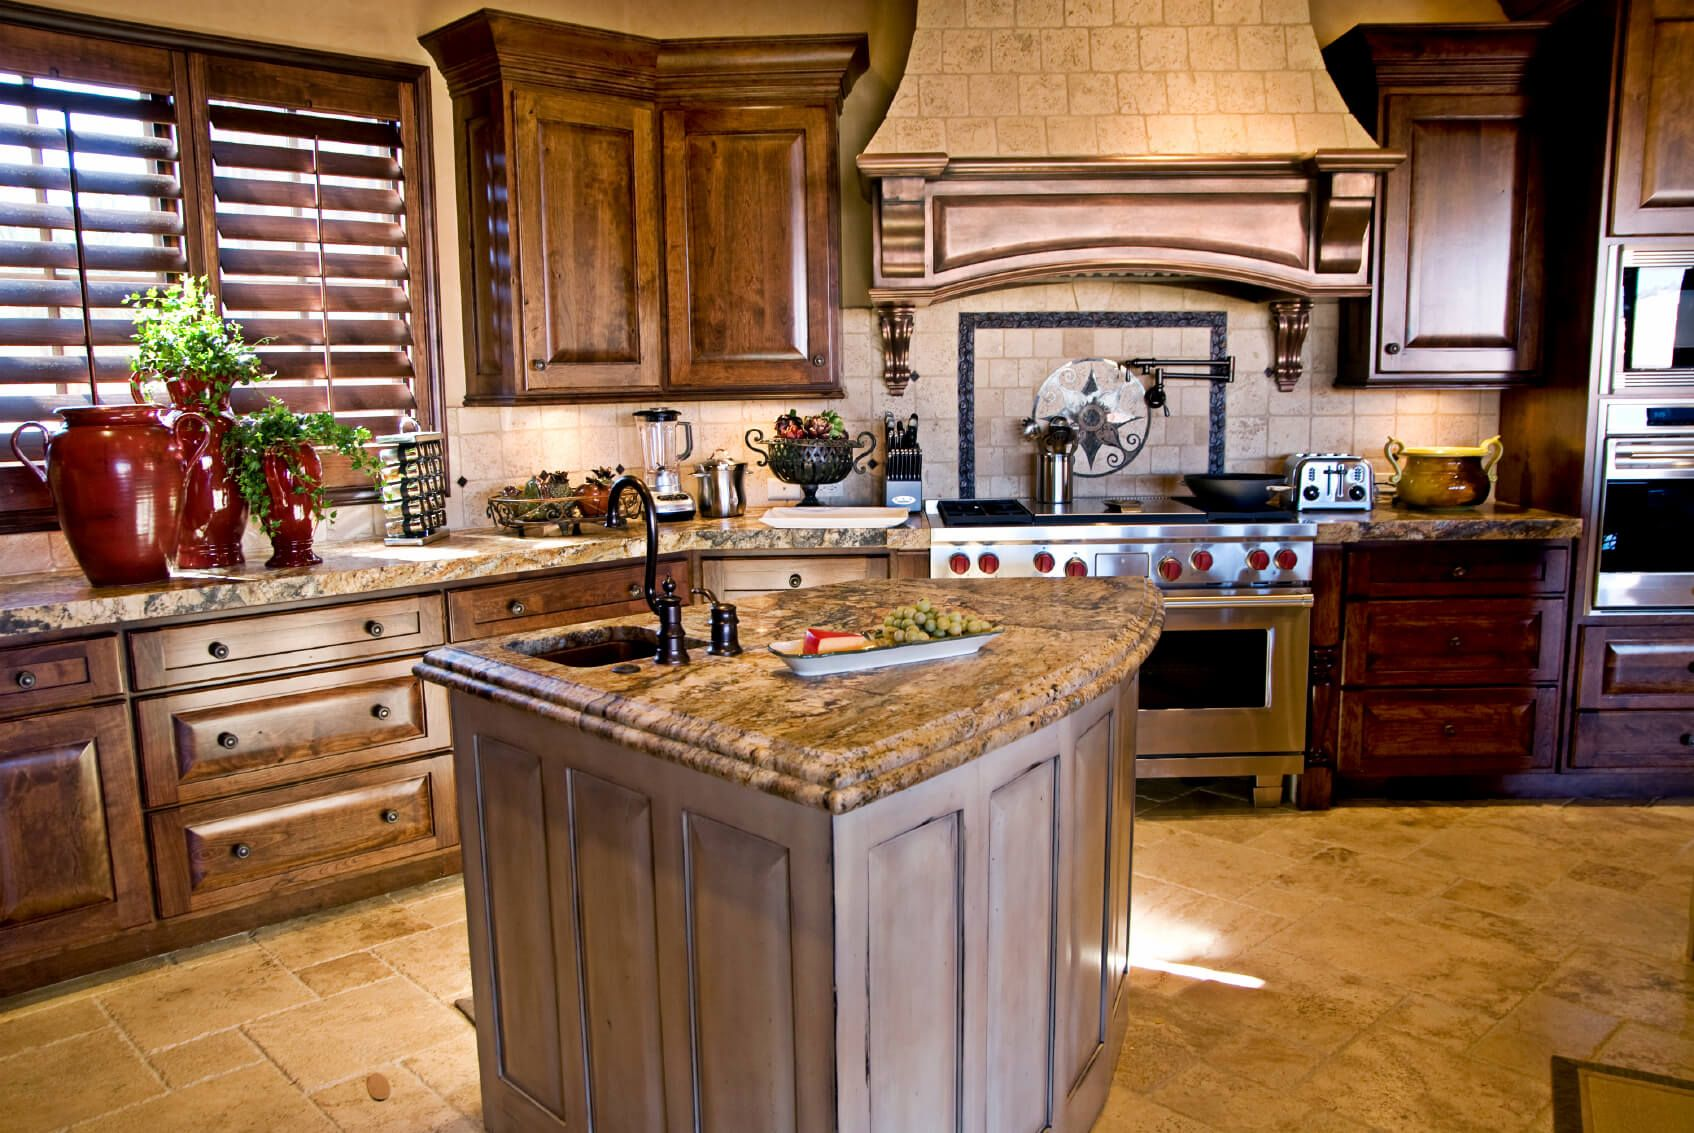 48 luxury dream kitchen designs worth every penny (photos